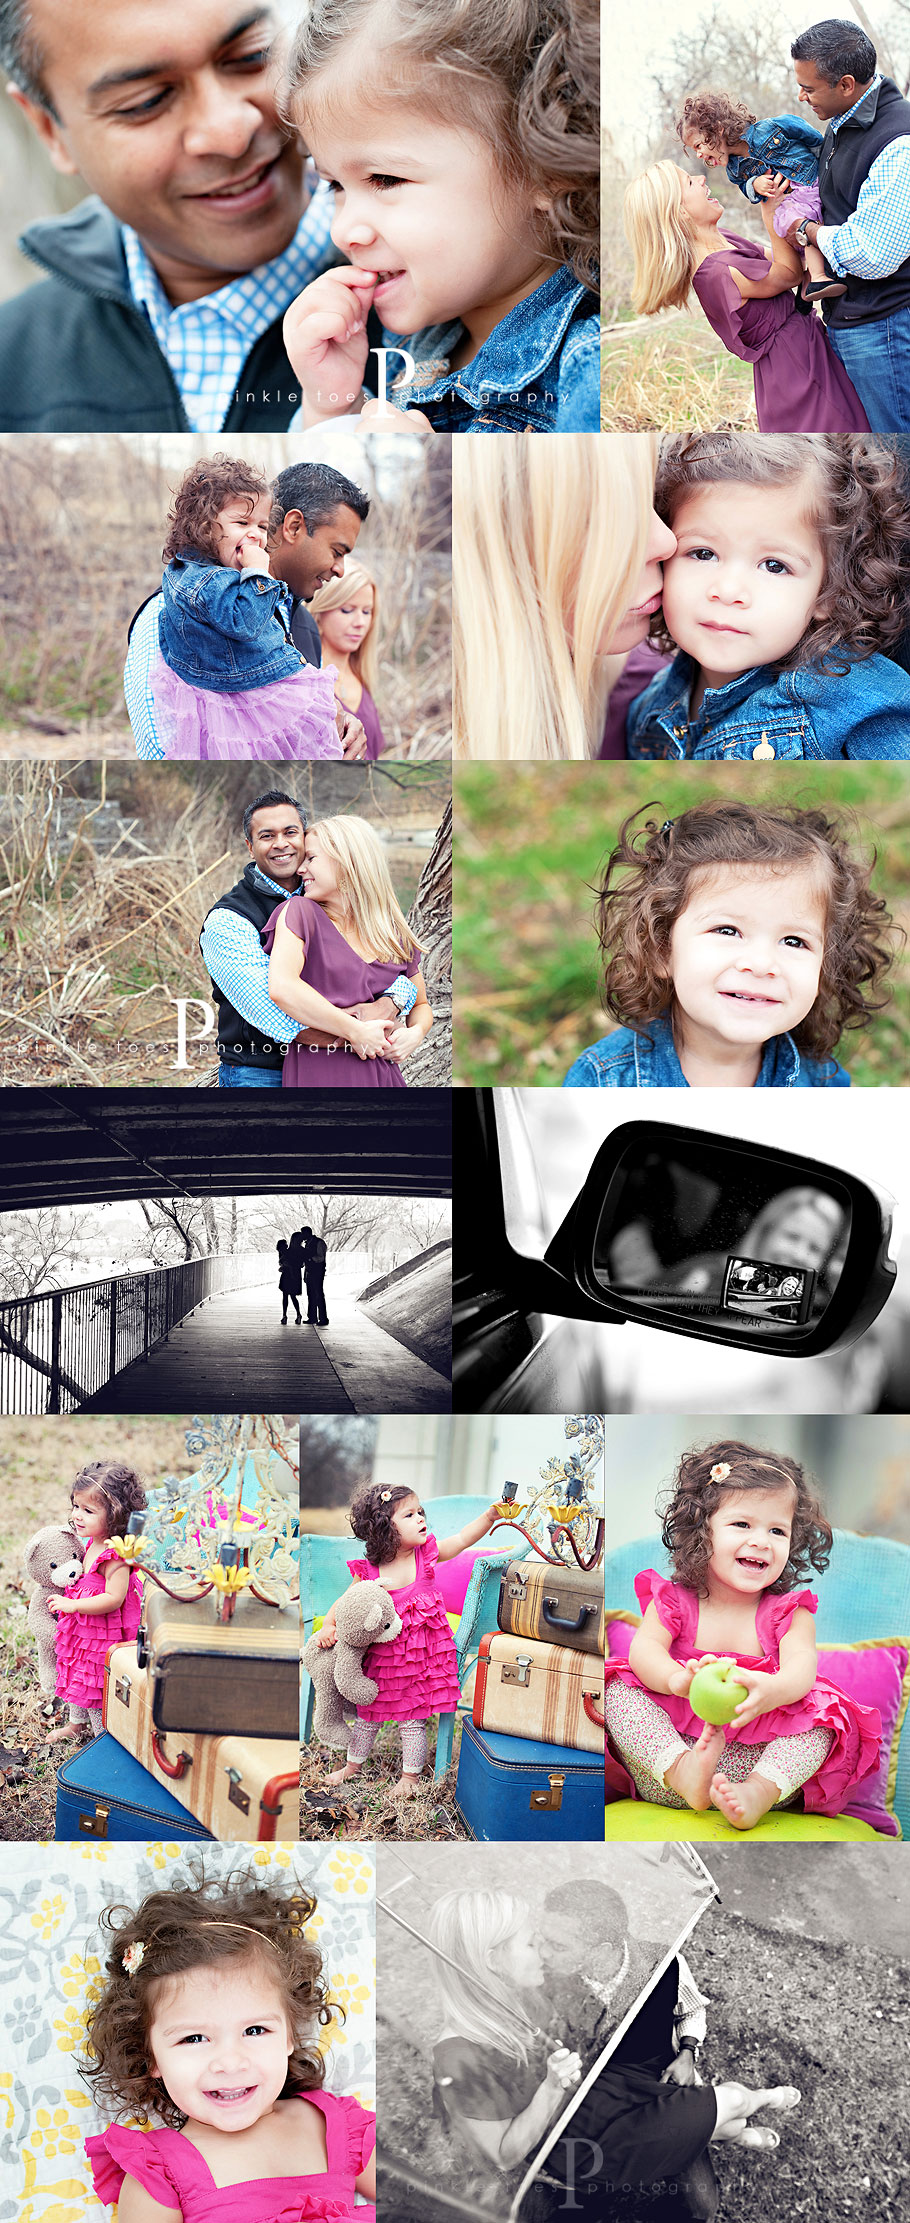 dodge_austin_family_lifestyle_photographer.jpg